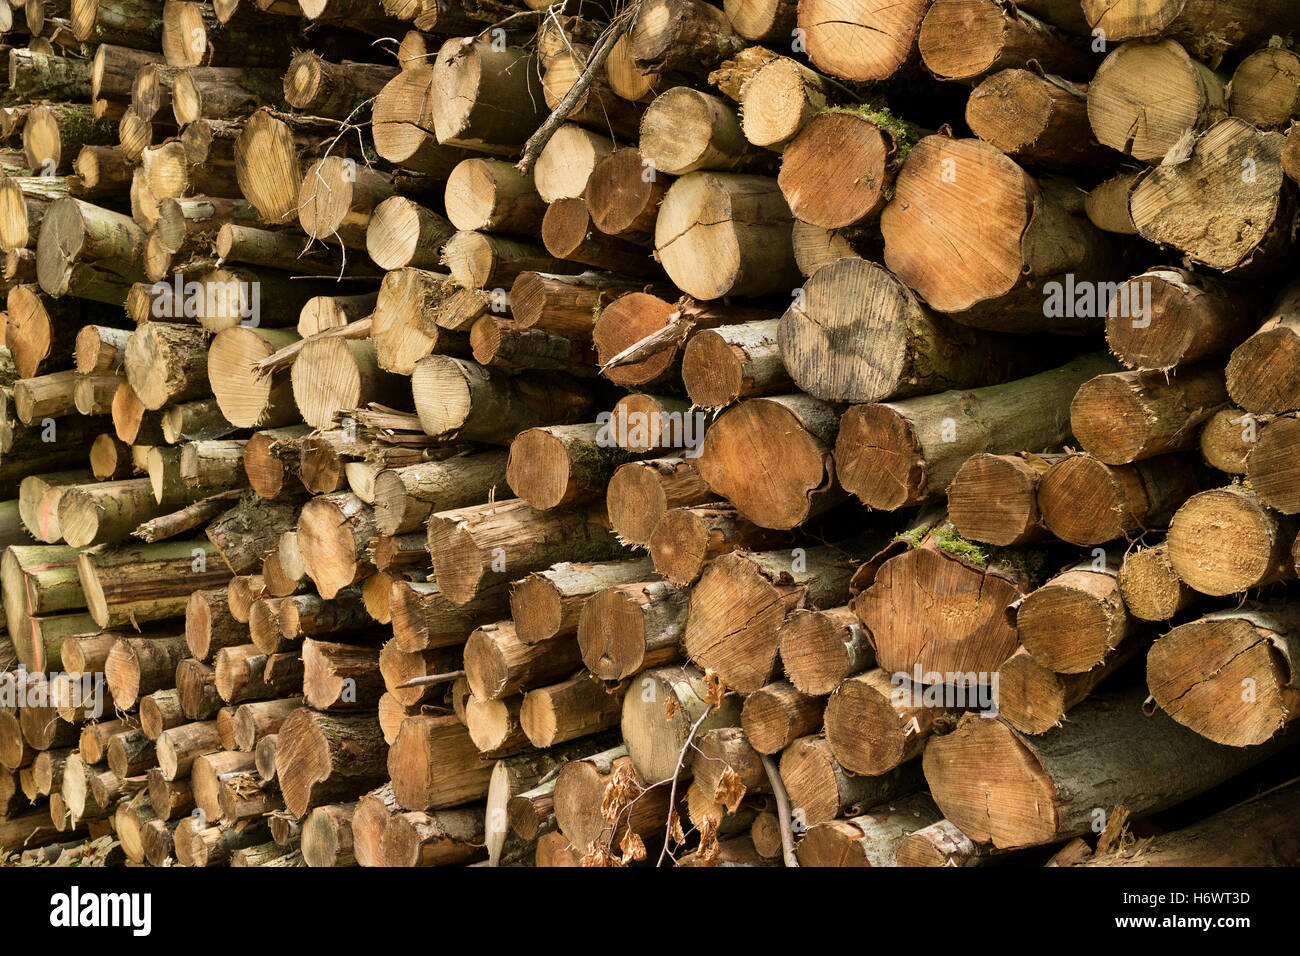 Pile of cutted trunks in the forest for firewood - Stock Image